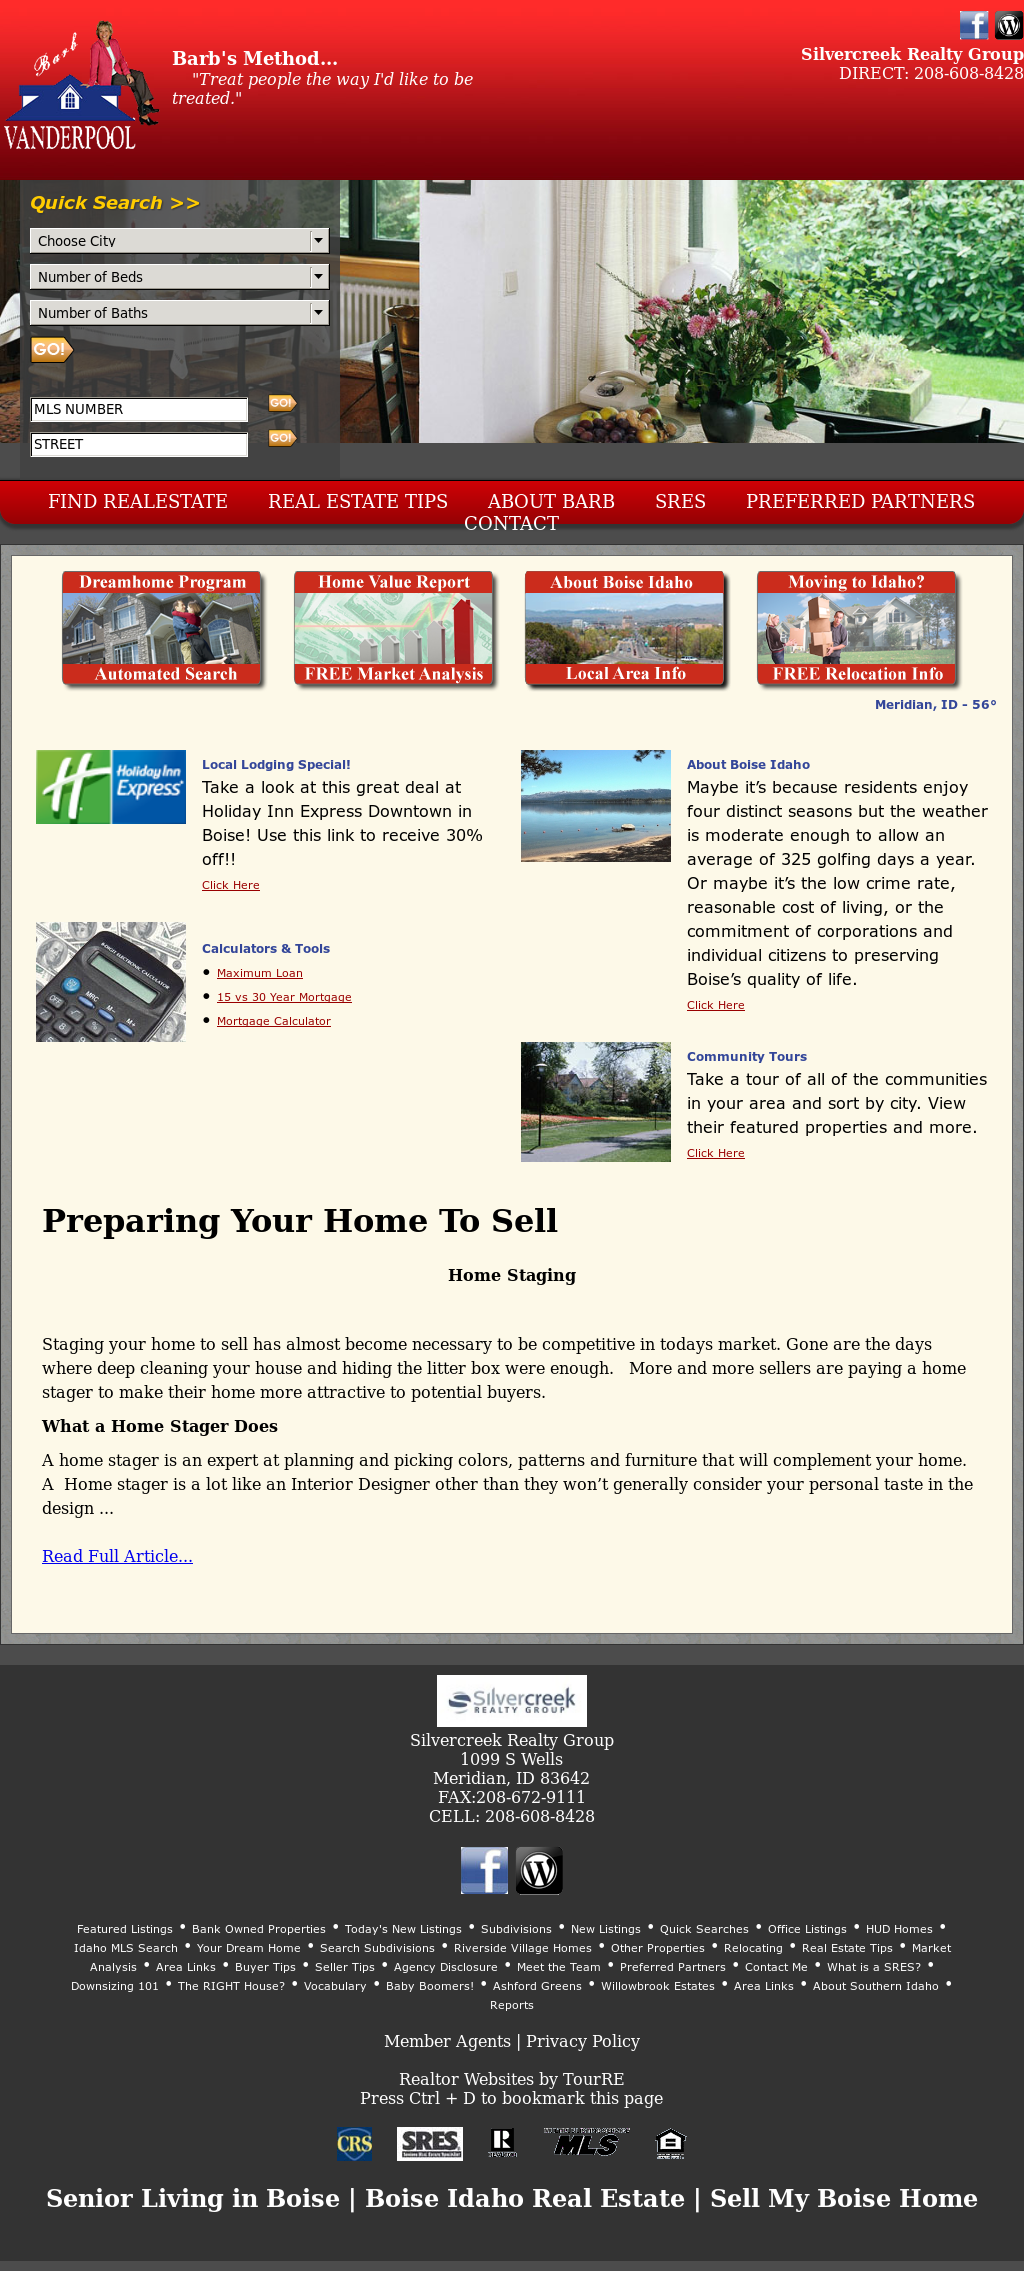 Barb Vanderpool: Boise Real Estate Competitors, Revenue and